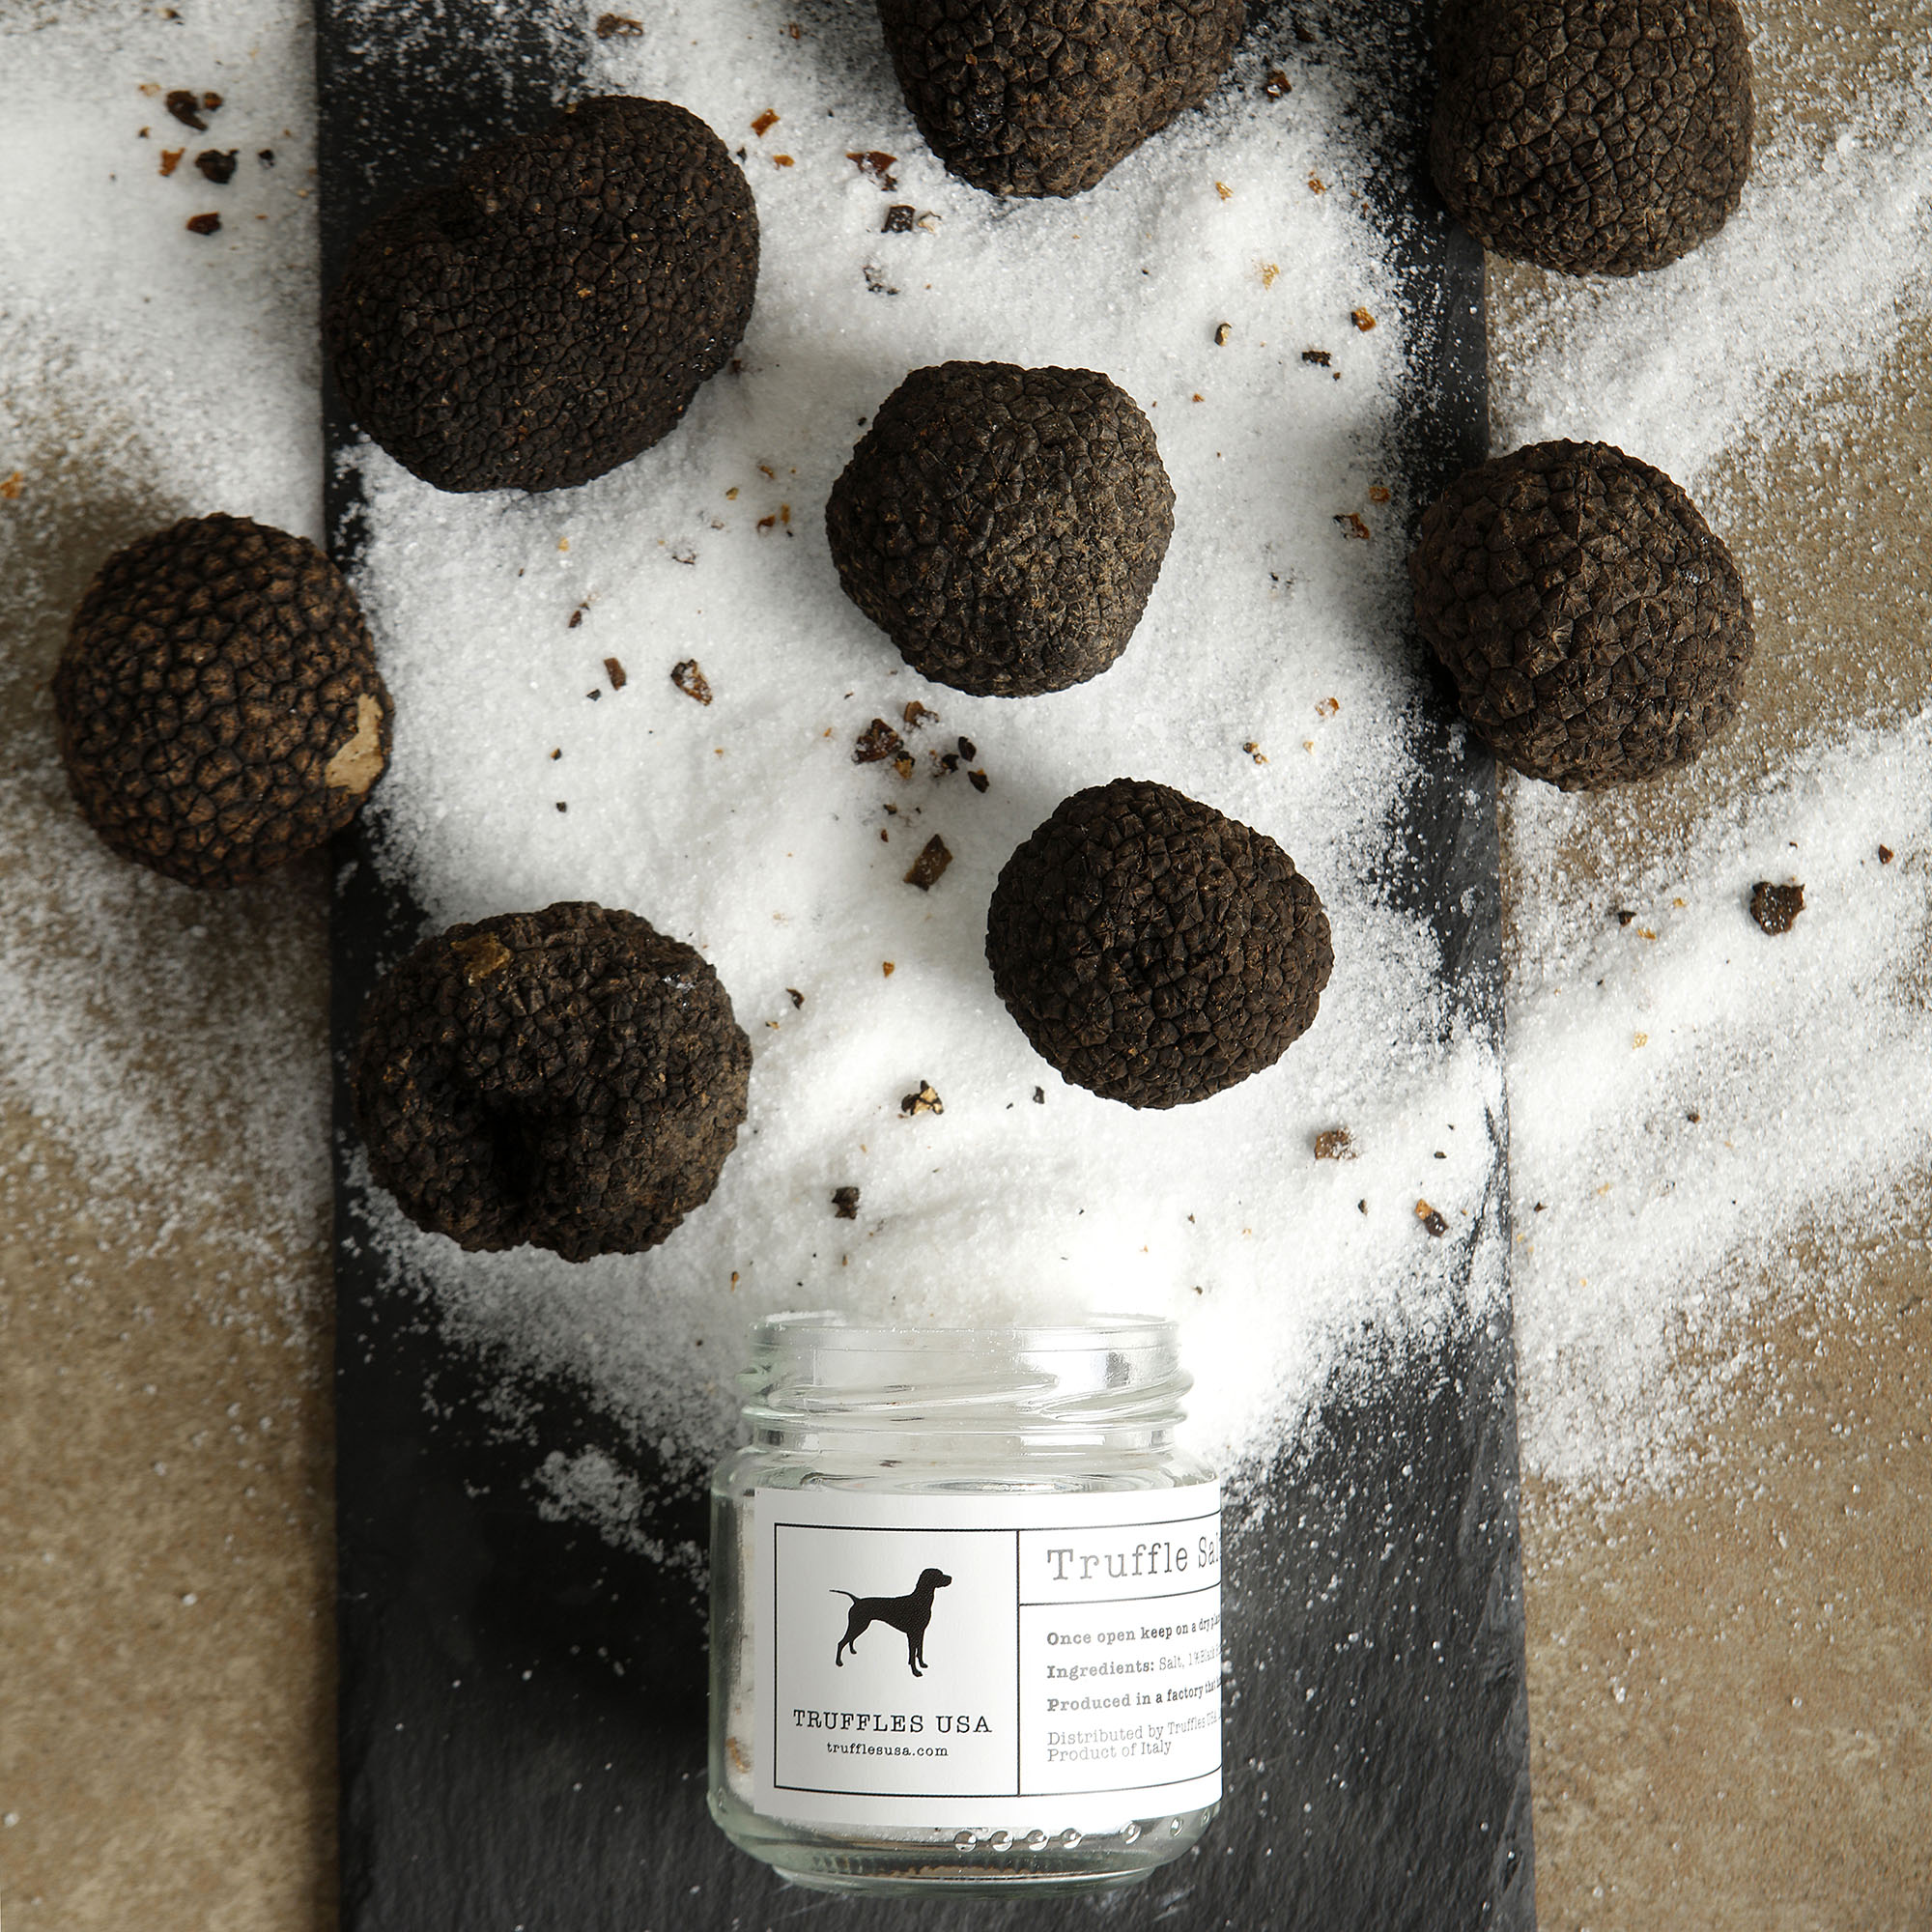 Truffles-USA-truffle-products_0001_0014.